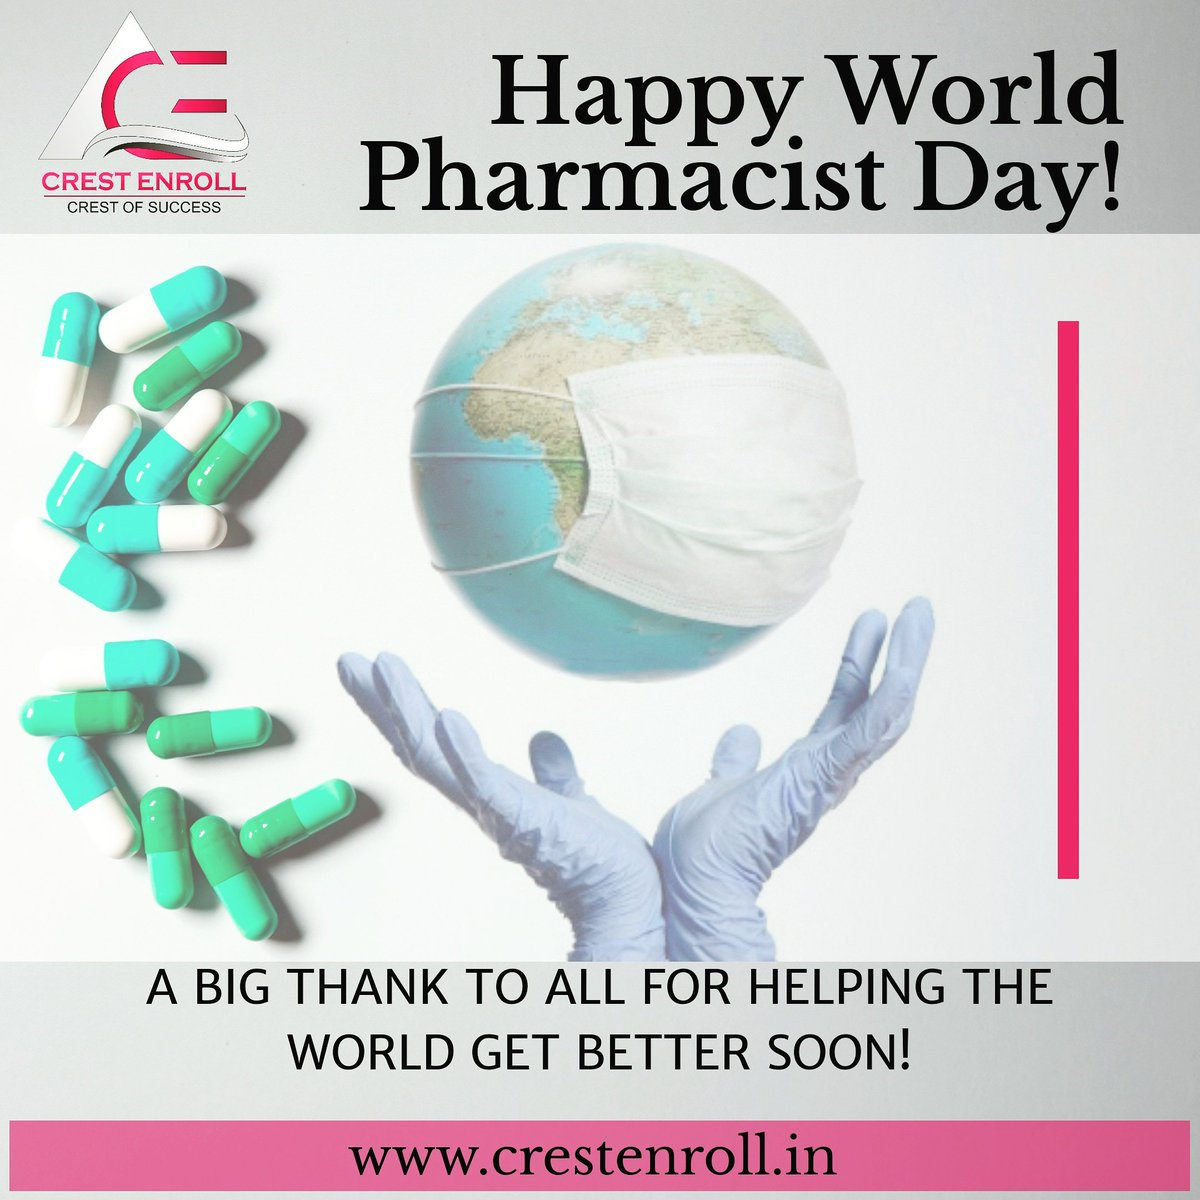 Happy World Pharmacist Day!✨ A big thank to all for helping the world get better soon!🌍💐 . Learn More About Clinical Research:  https://t.co/y9svI4uUnO .  #happyworldpharmacistday #pharmacy #pharmaceutical #clinicalresearch #pharmacological #training #bestinstitute #placement https://t.co/vN0aG2Om4H